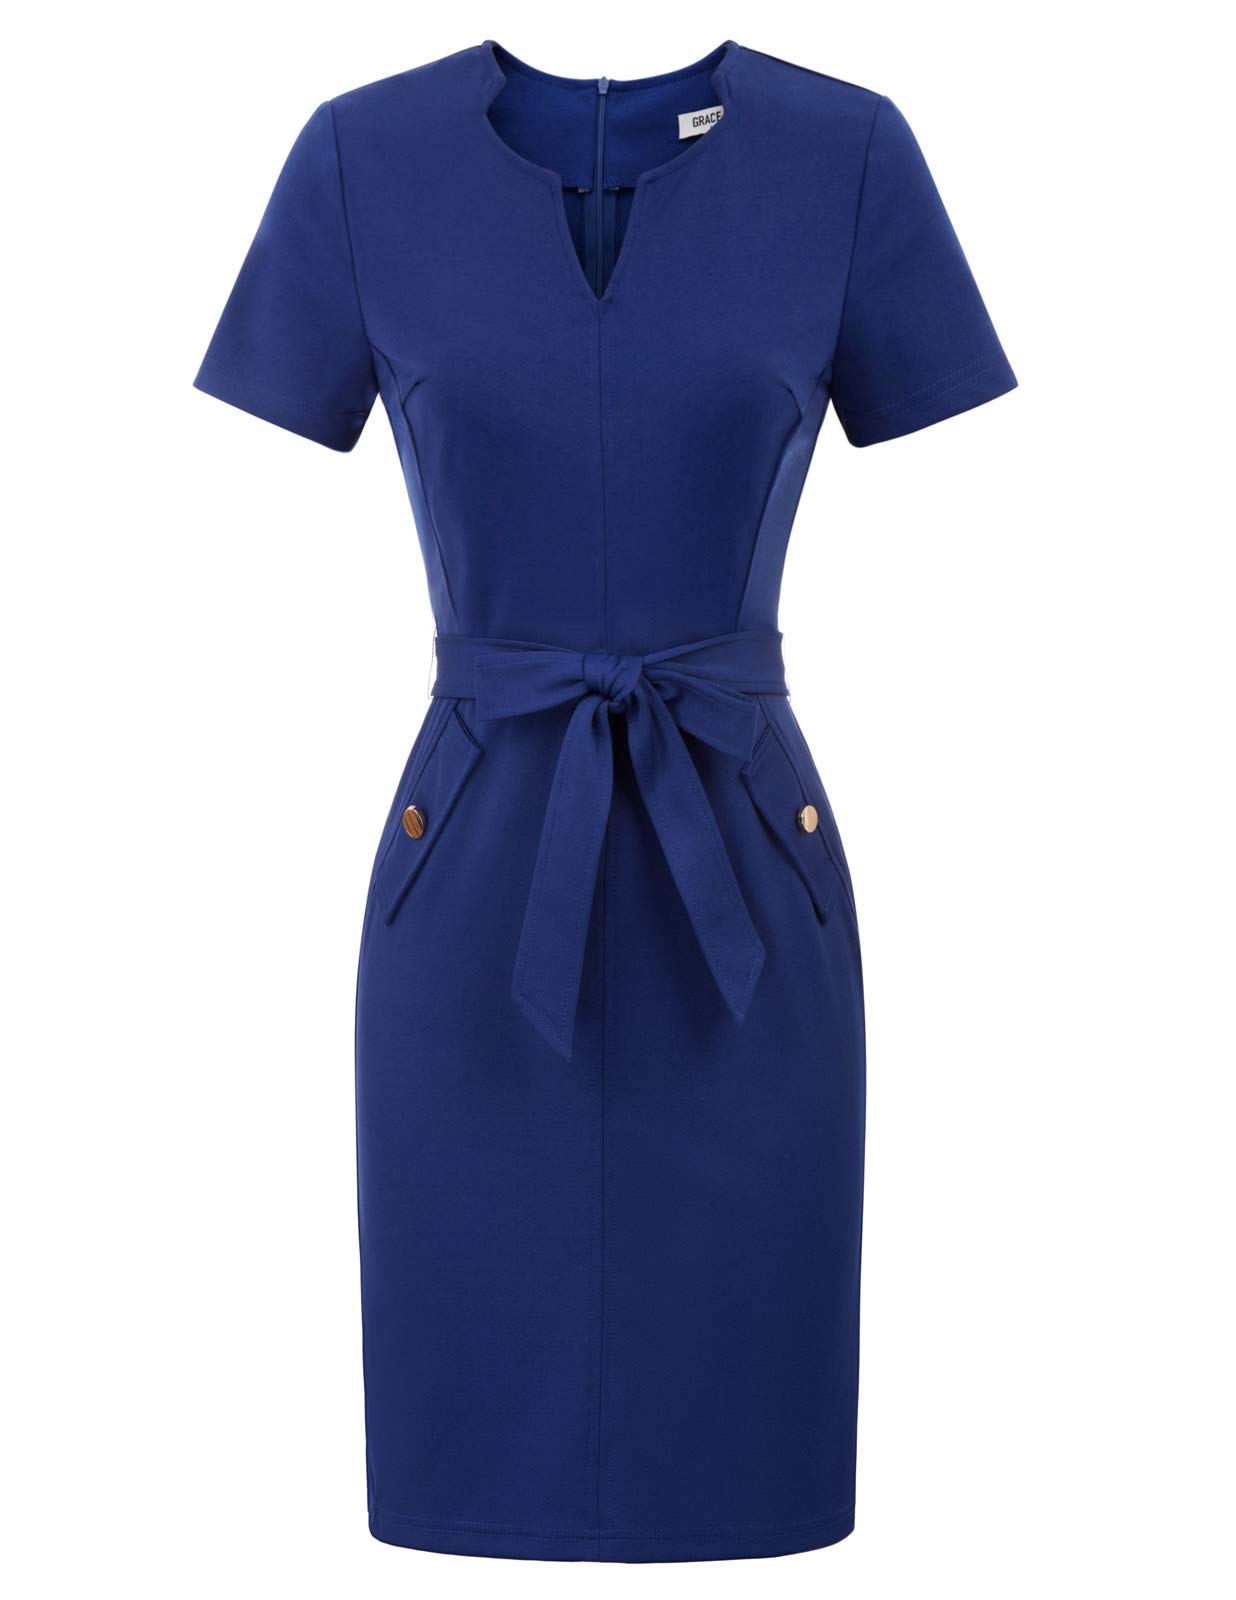 Available at Amazon: GRACE KARIN Women's Retro Slim Short Sleeve Business Pencil Dress with Belt